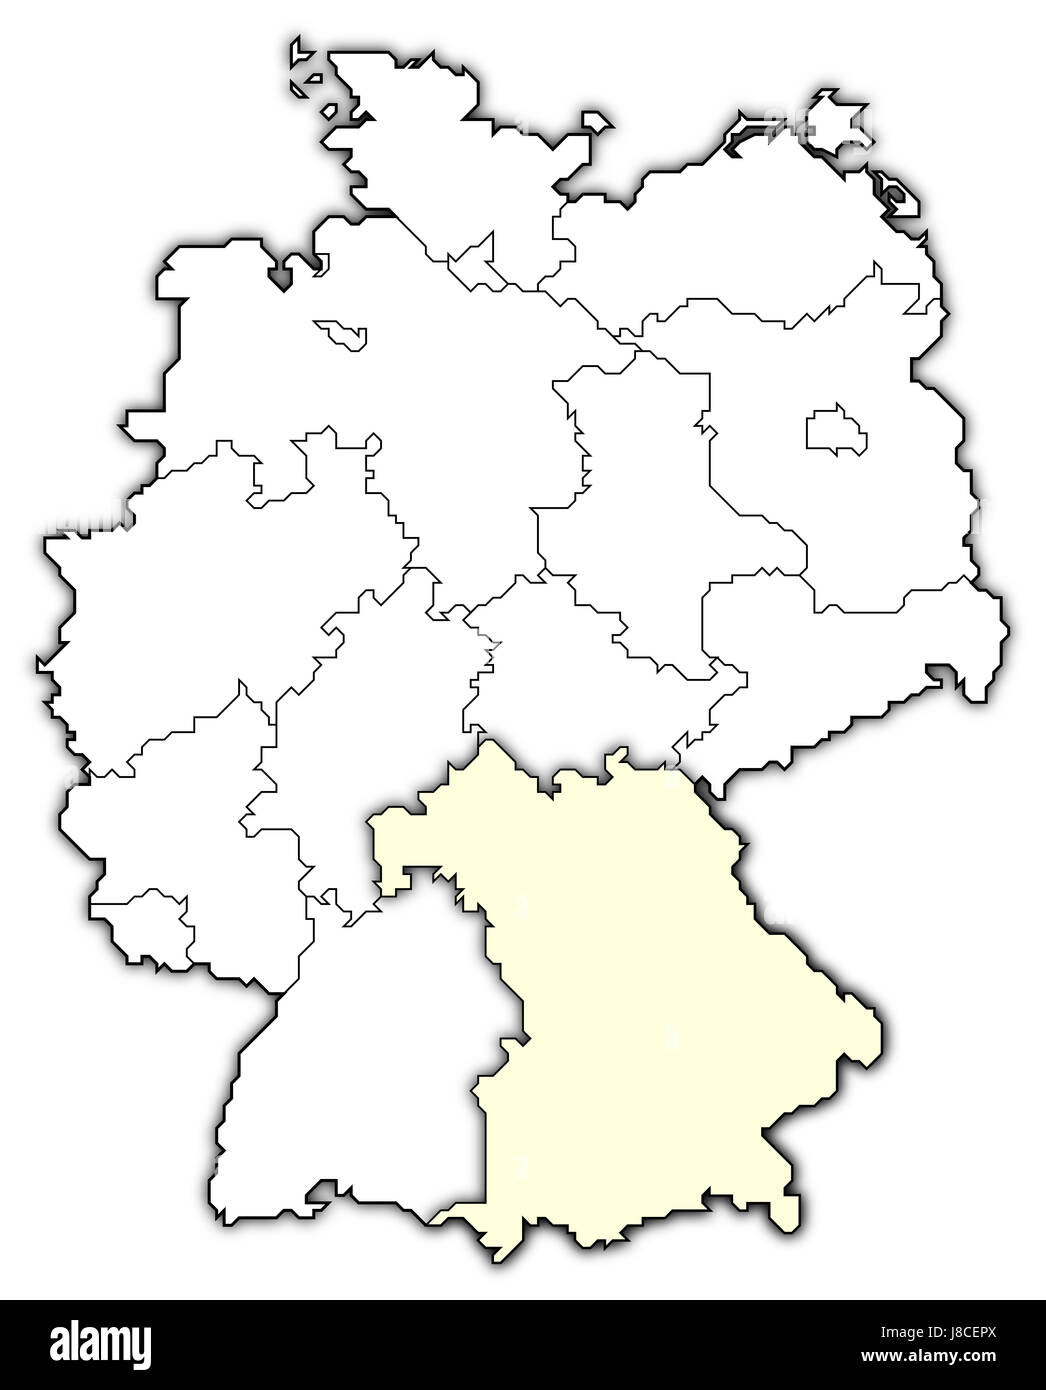 map of germany,bavaria highlighted - Stock Image